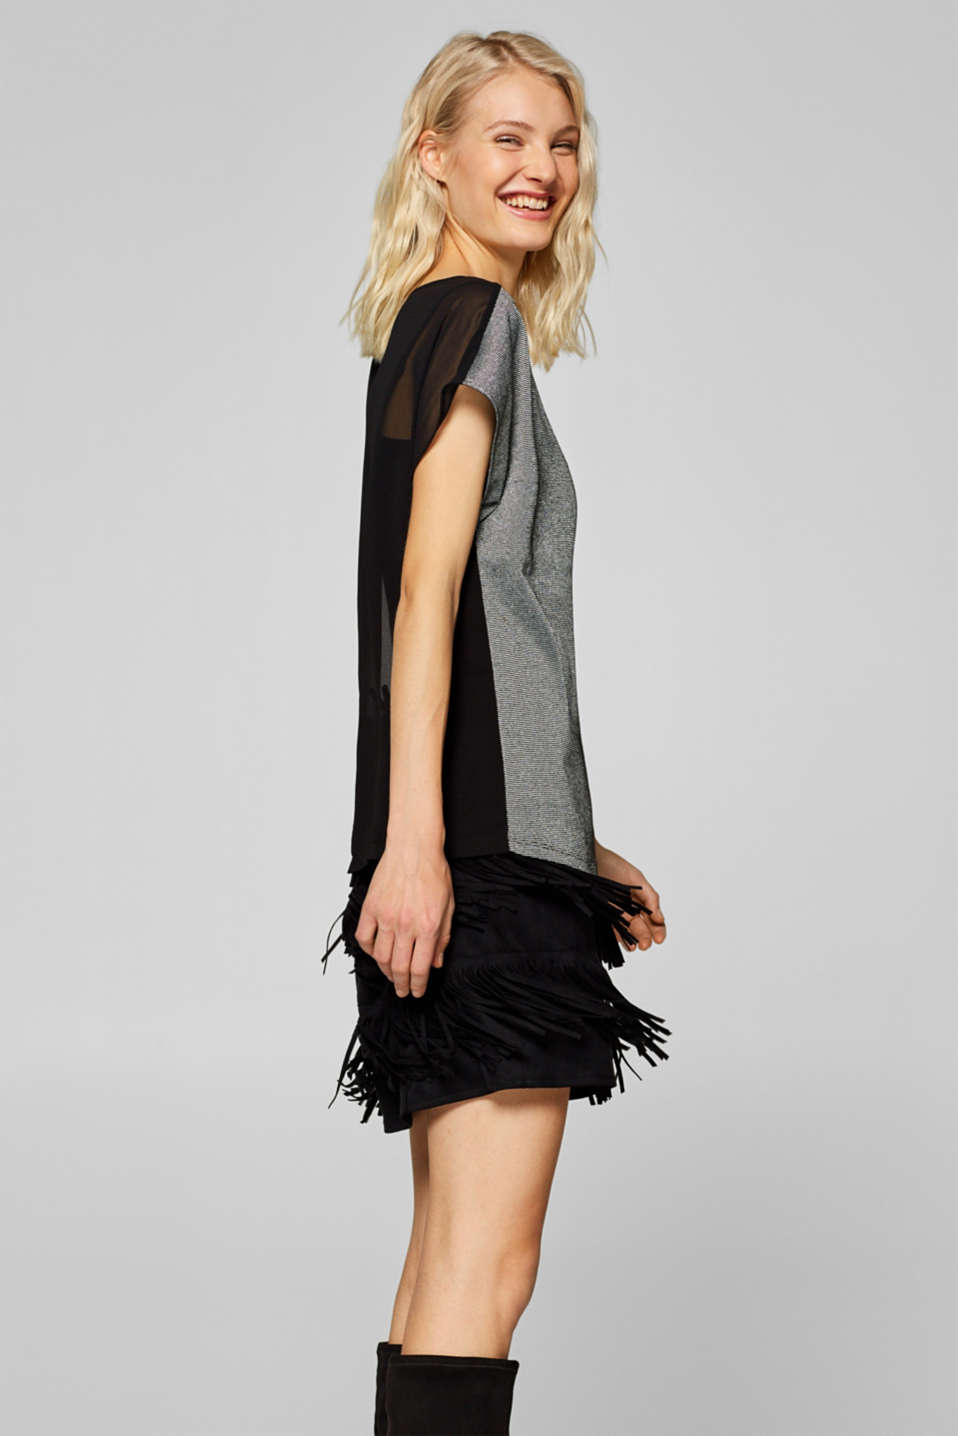 Esprit - Blouse top in glitter jersey and chiffon